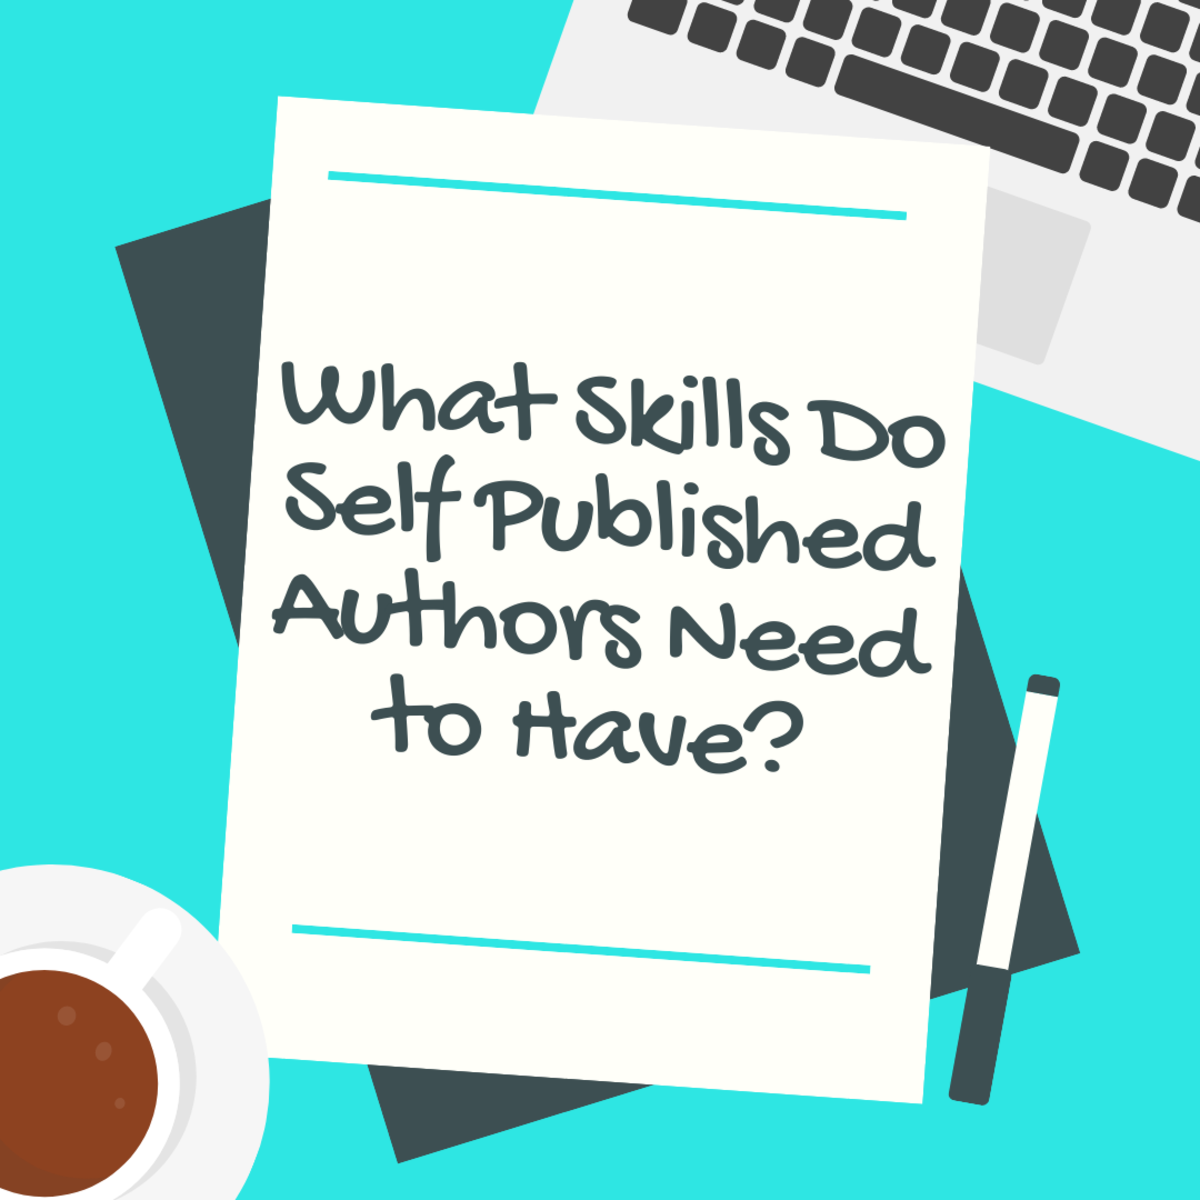 Self published authors need more than writing skills!